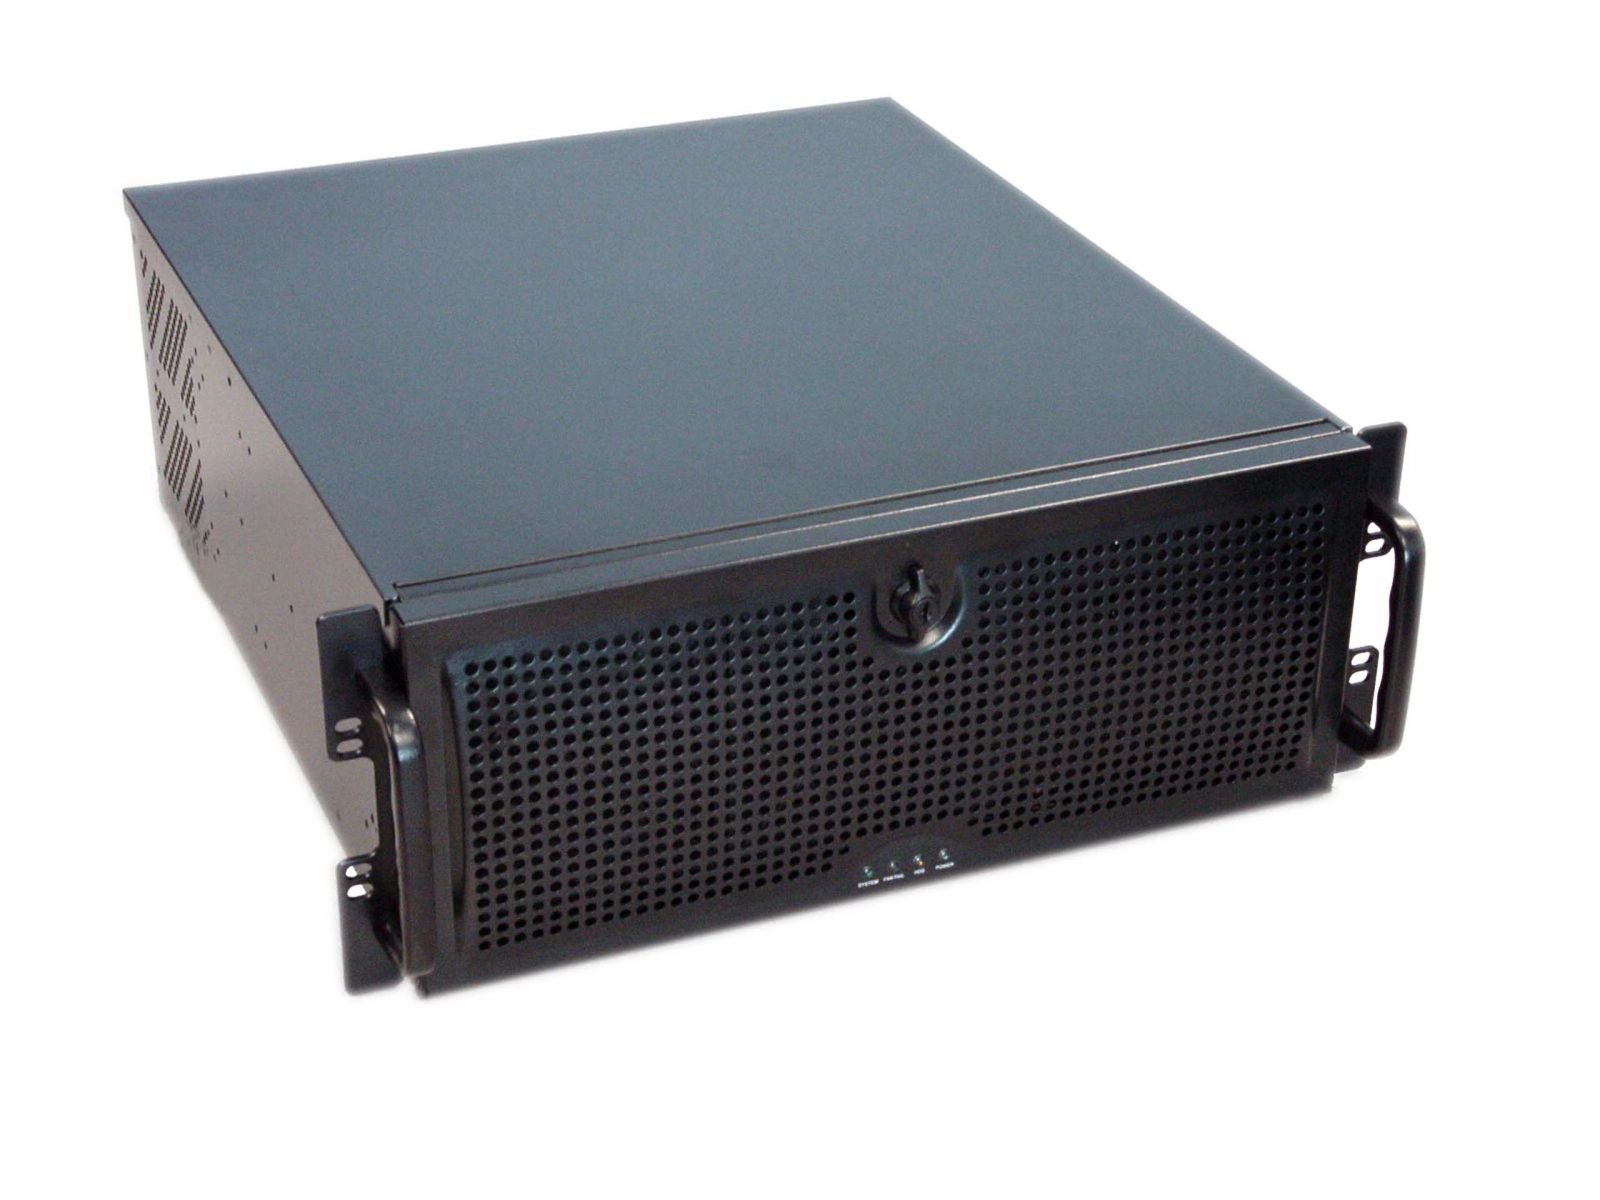 DXE410 PCIe Gen1 Expansion Chassis